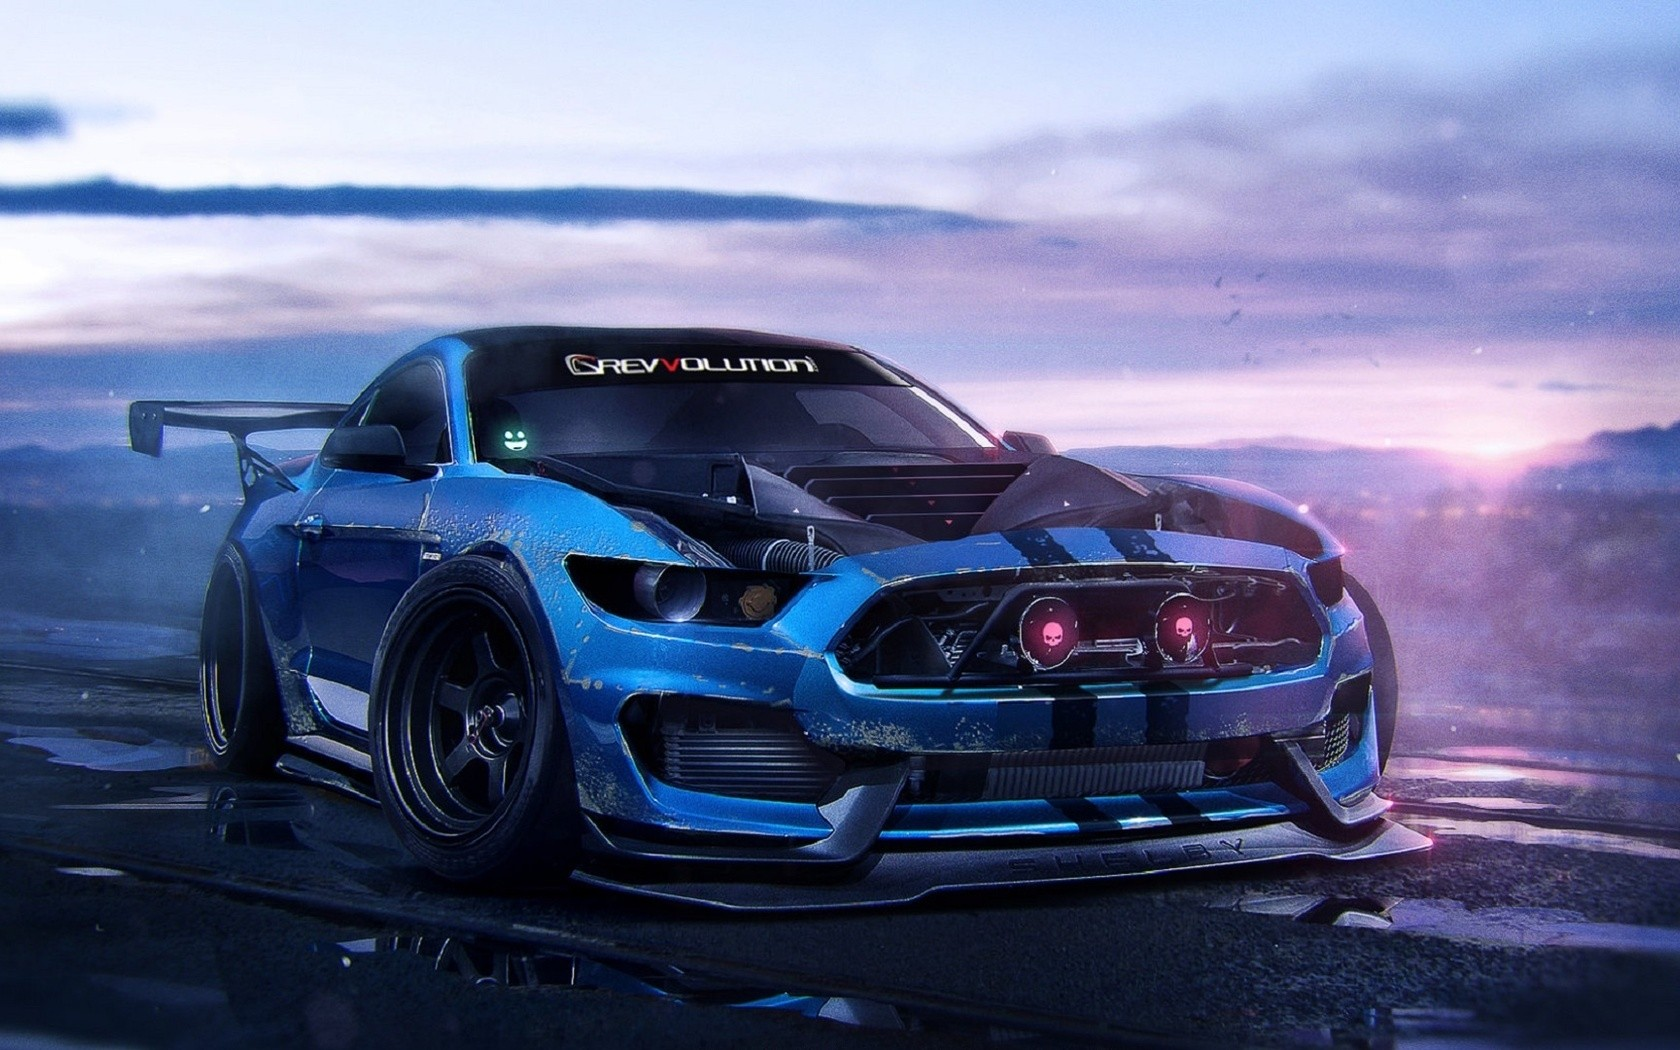 Awesome Car Wallpaper Angles Sports Car Ford Mustang Shelby Ford Mustang Wallpapers